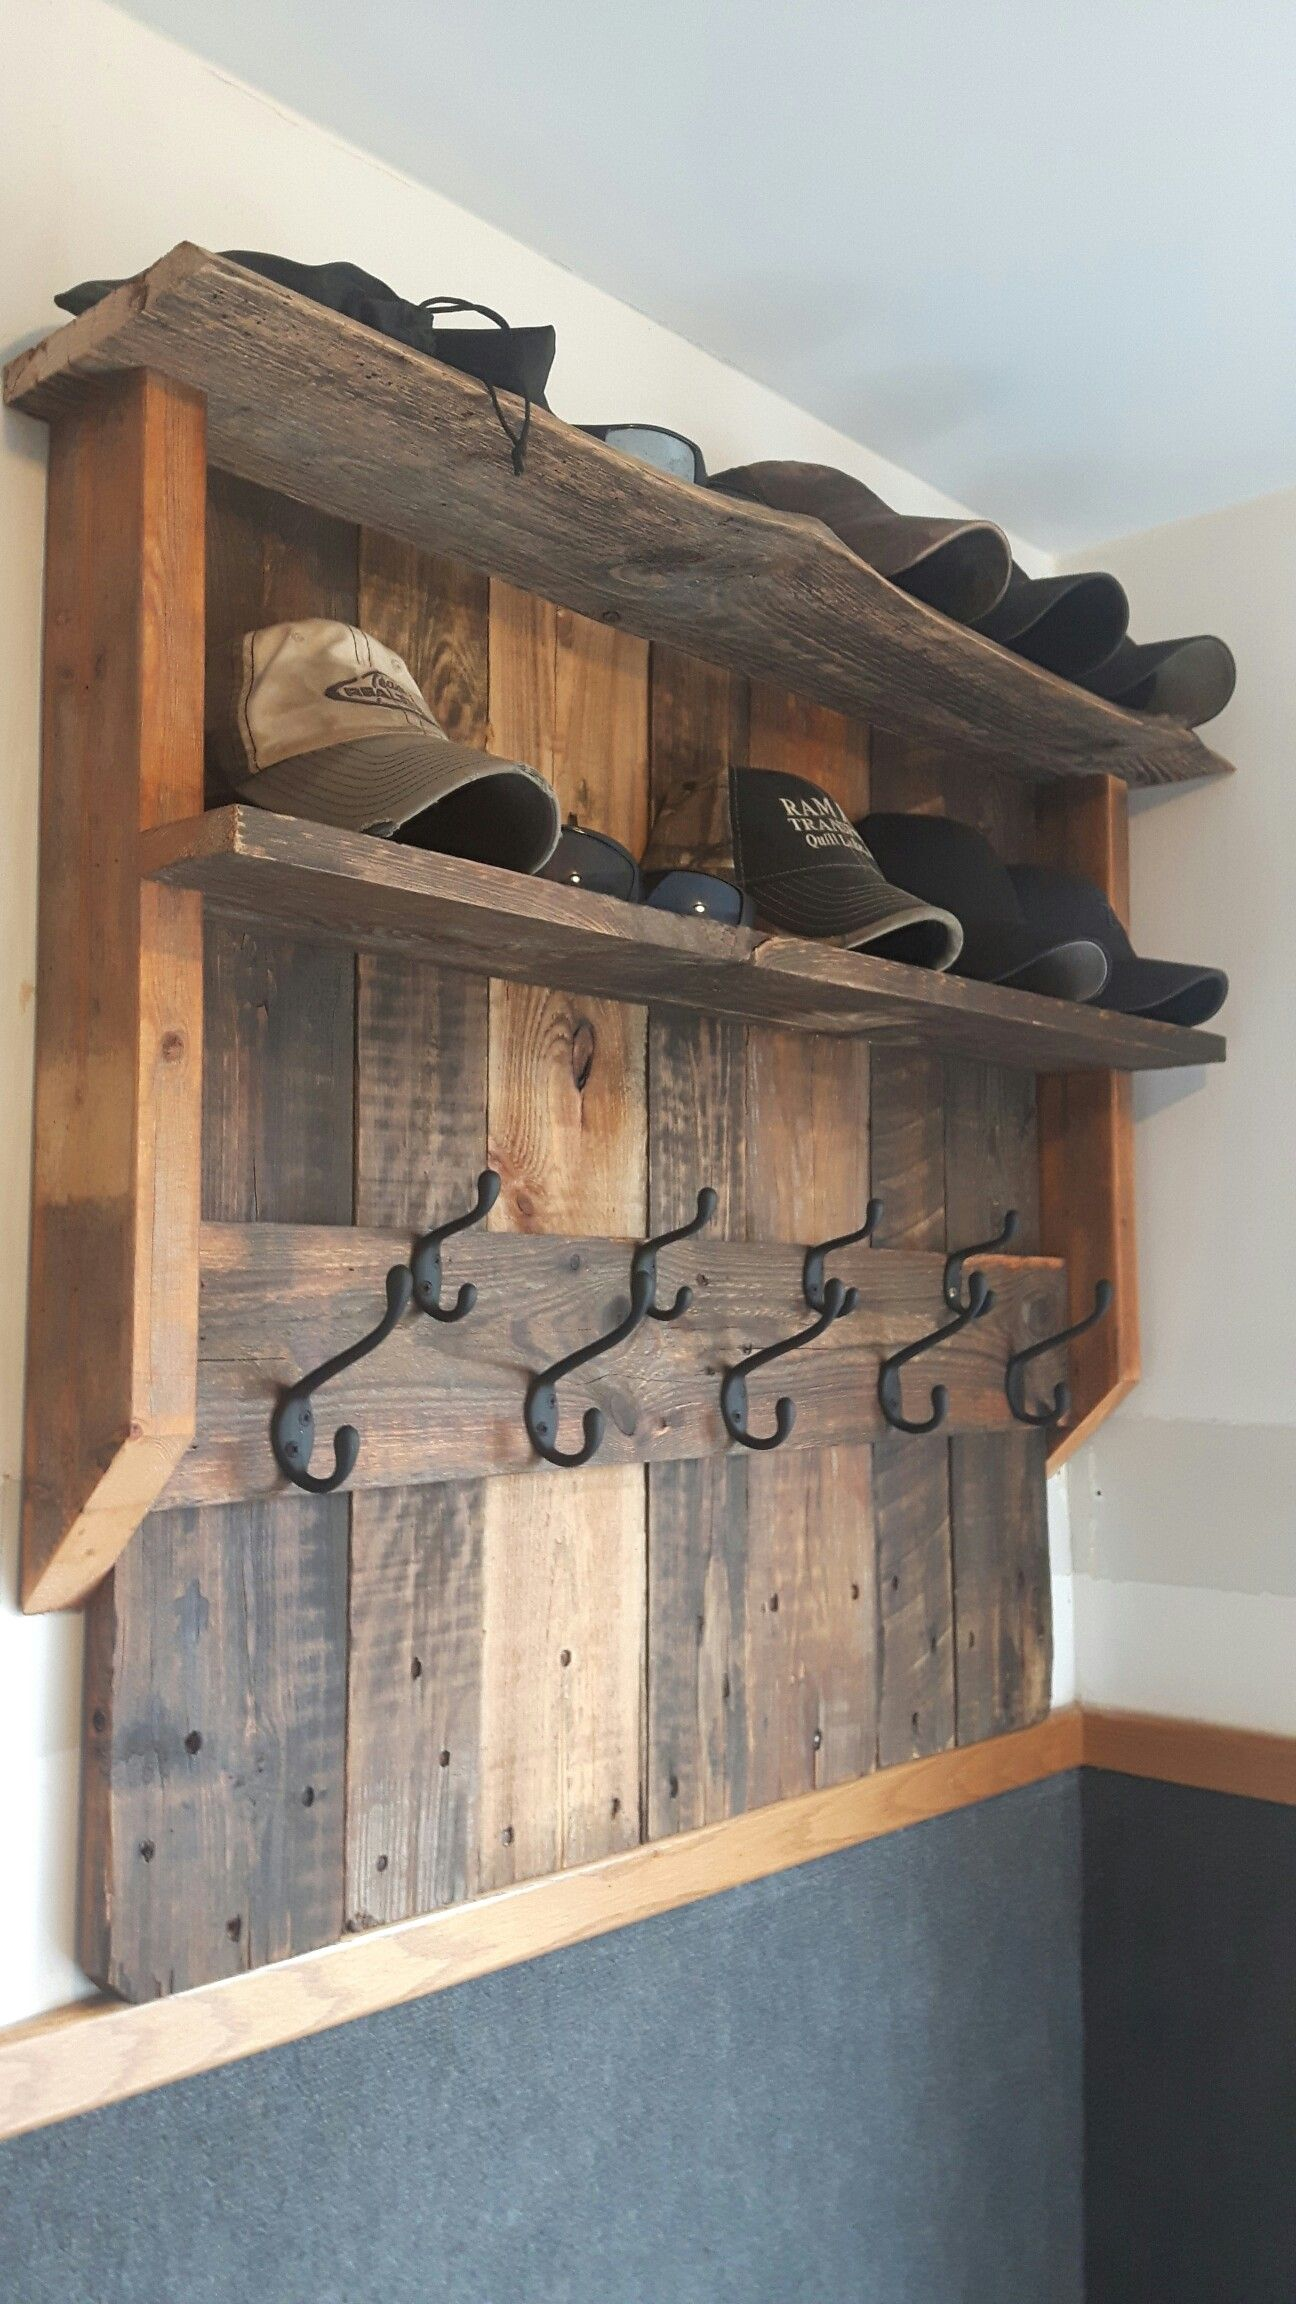 Matching pallet board coat rack. Home sweet home A&J Möbel, Haus